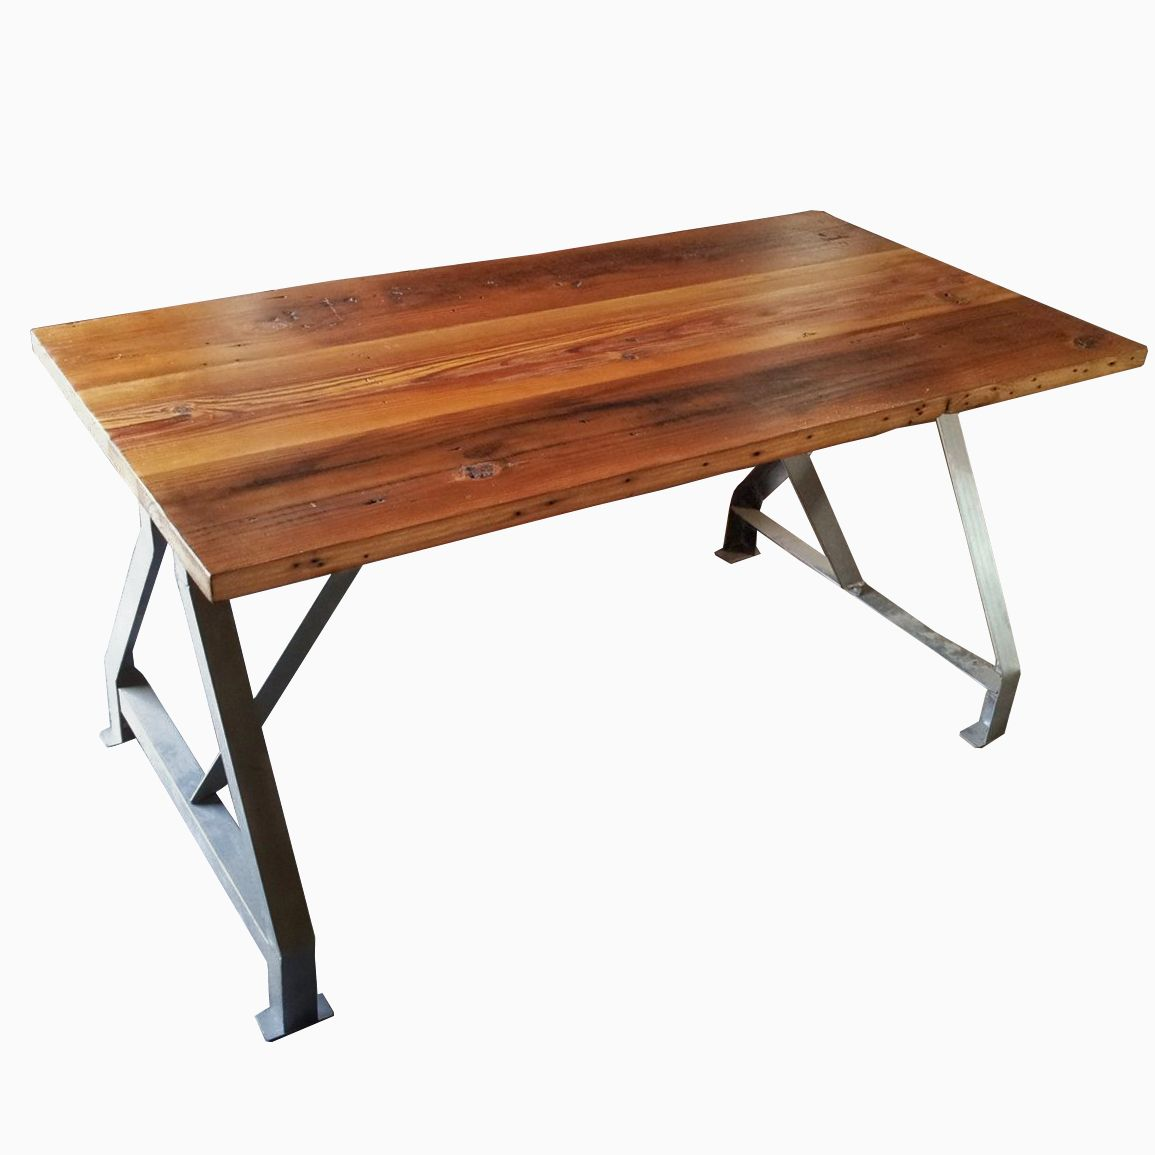 table with industrial metal base and made from reclaimed wood plank